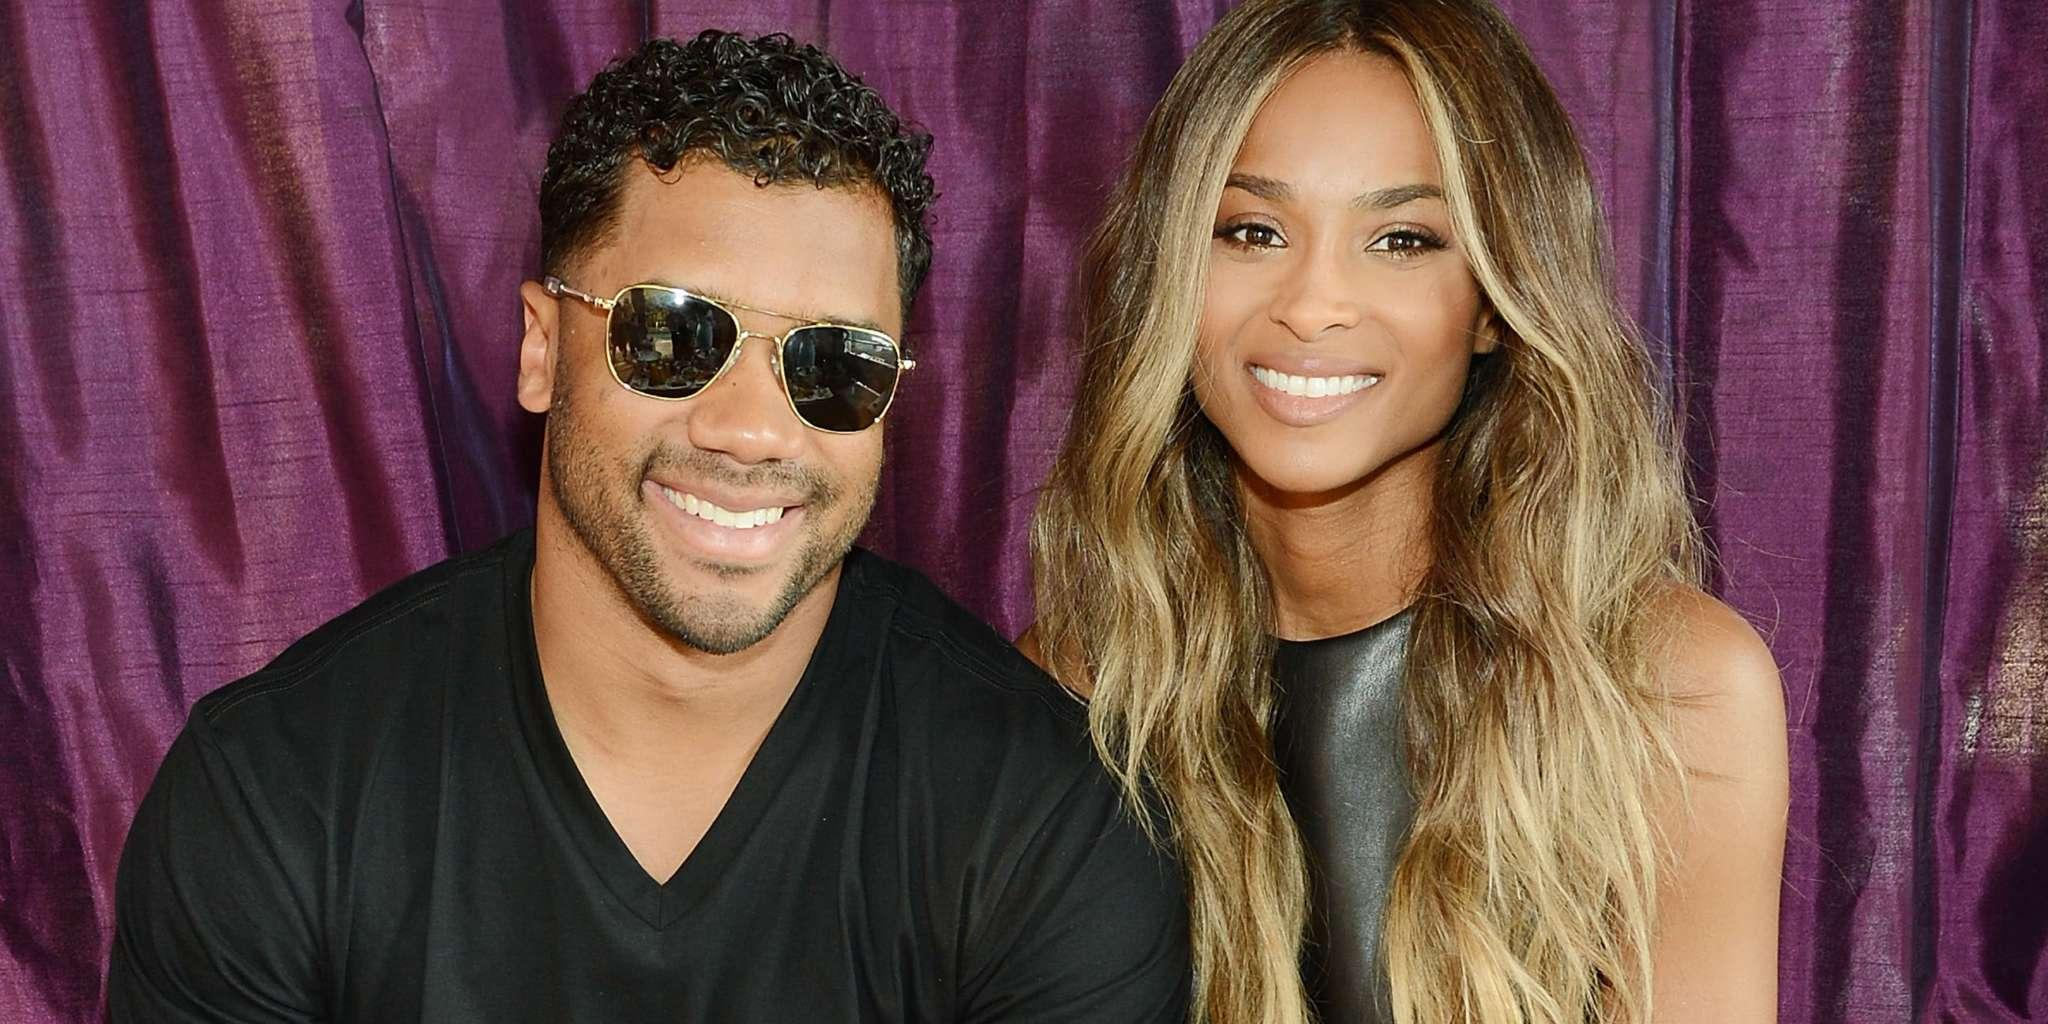 Ciara Makes Fans Happy With A Pregnancy Photo Shoot - She's Flaunting Her Flawless Body In A Swimsuit